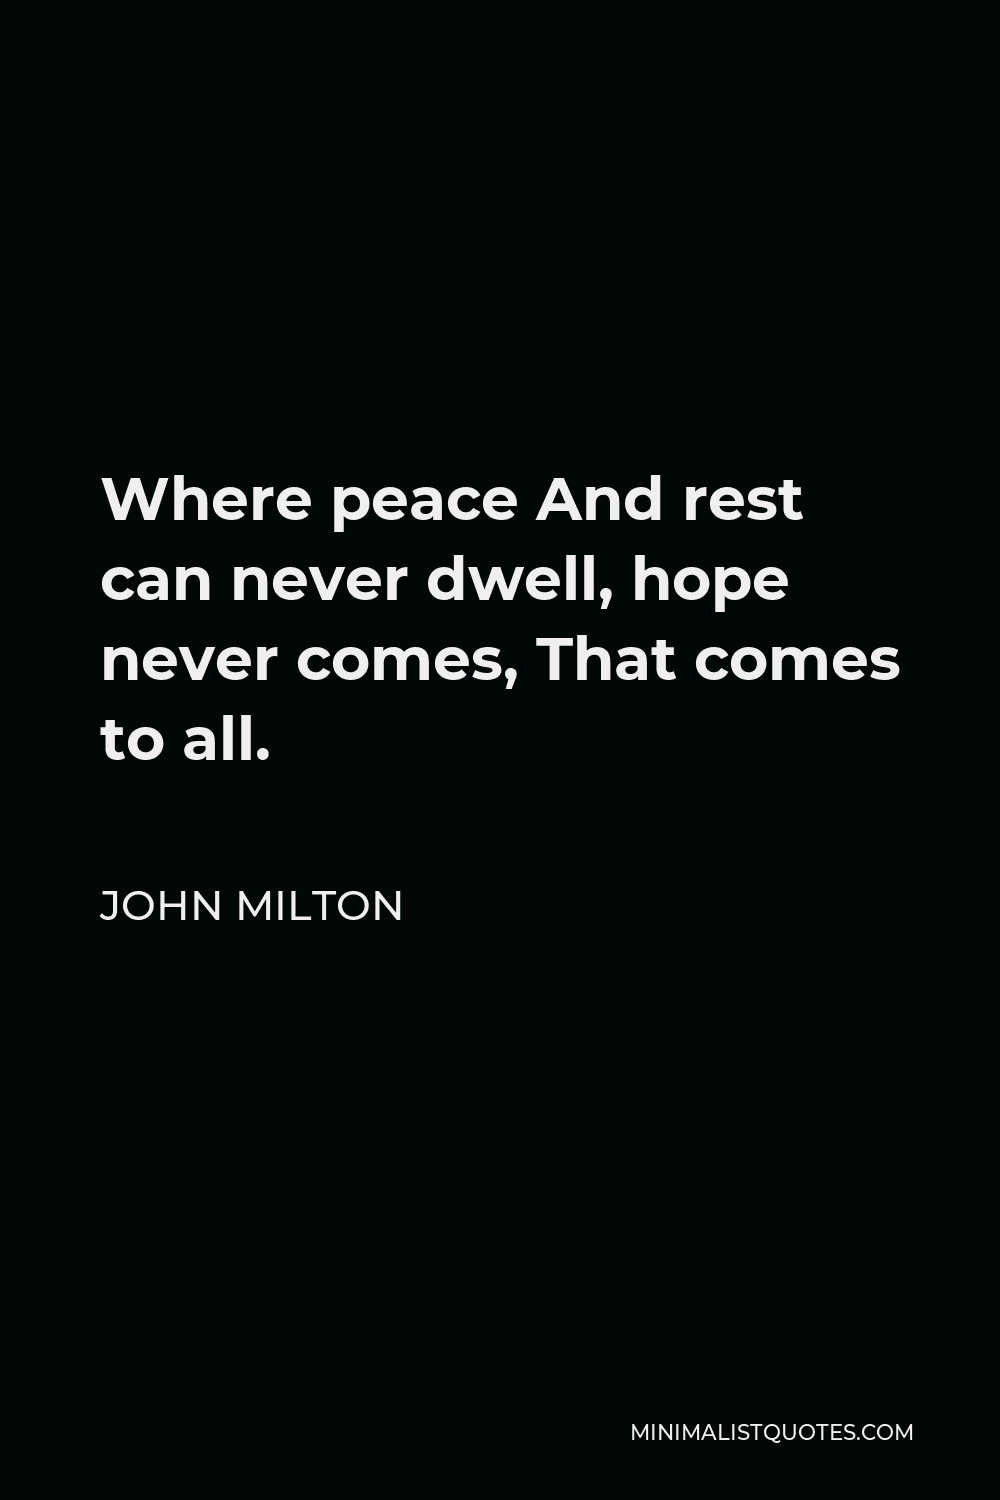 John Milton Quote - Where peace And rest can never dwell, hope never comes, That comes to all.